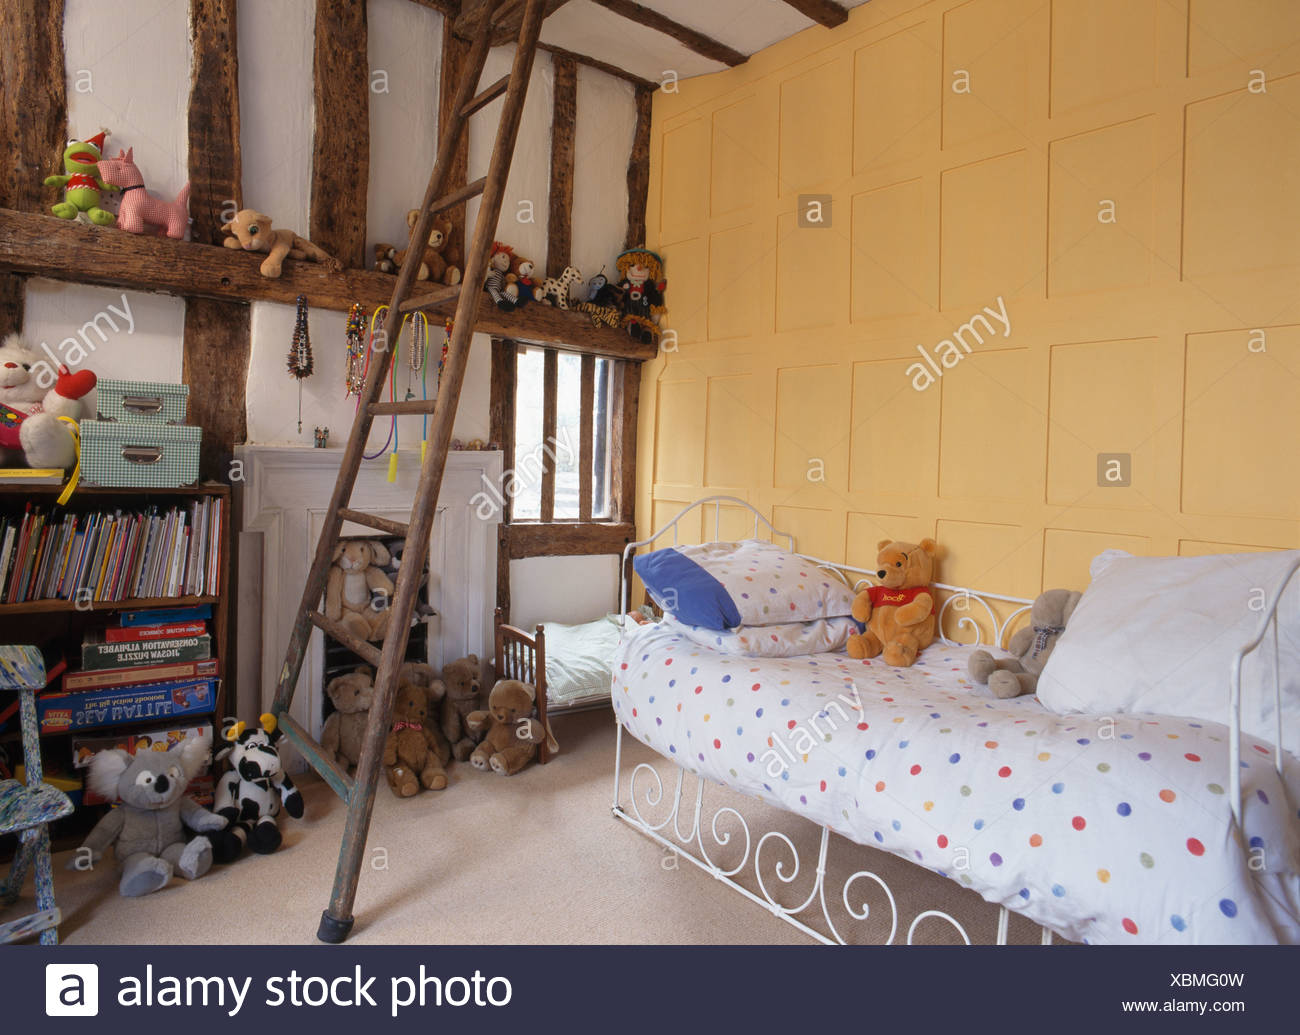 Paneled Yellow Wall Above White Wrought Iron Bed In Child S Bedroom With Wooden Ladder Stock Photo Alamy